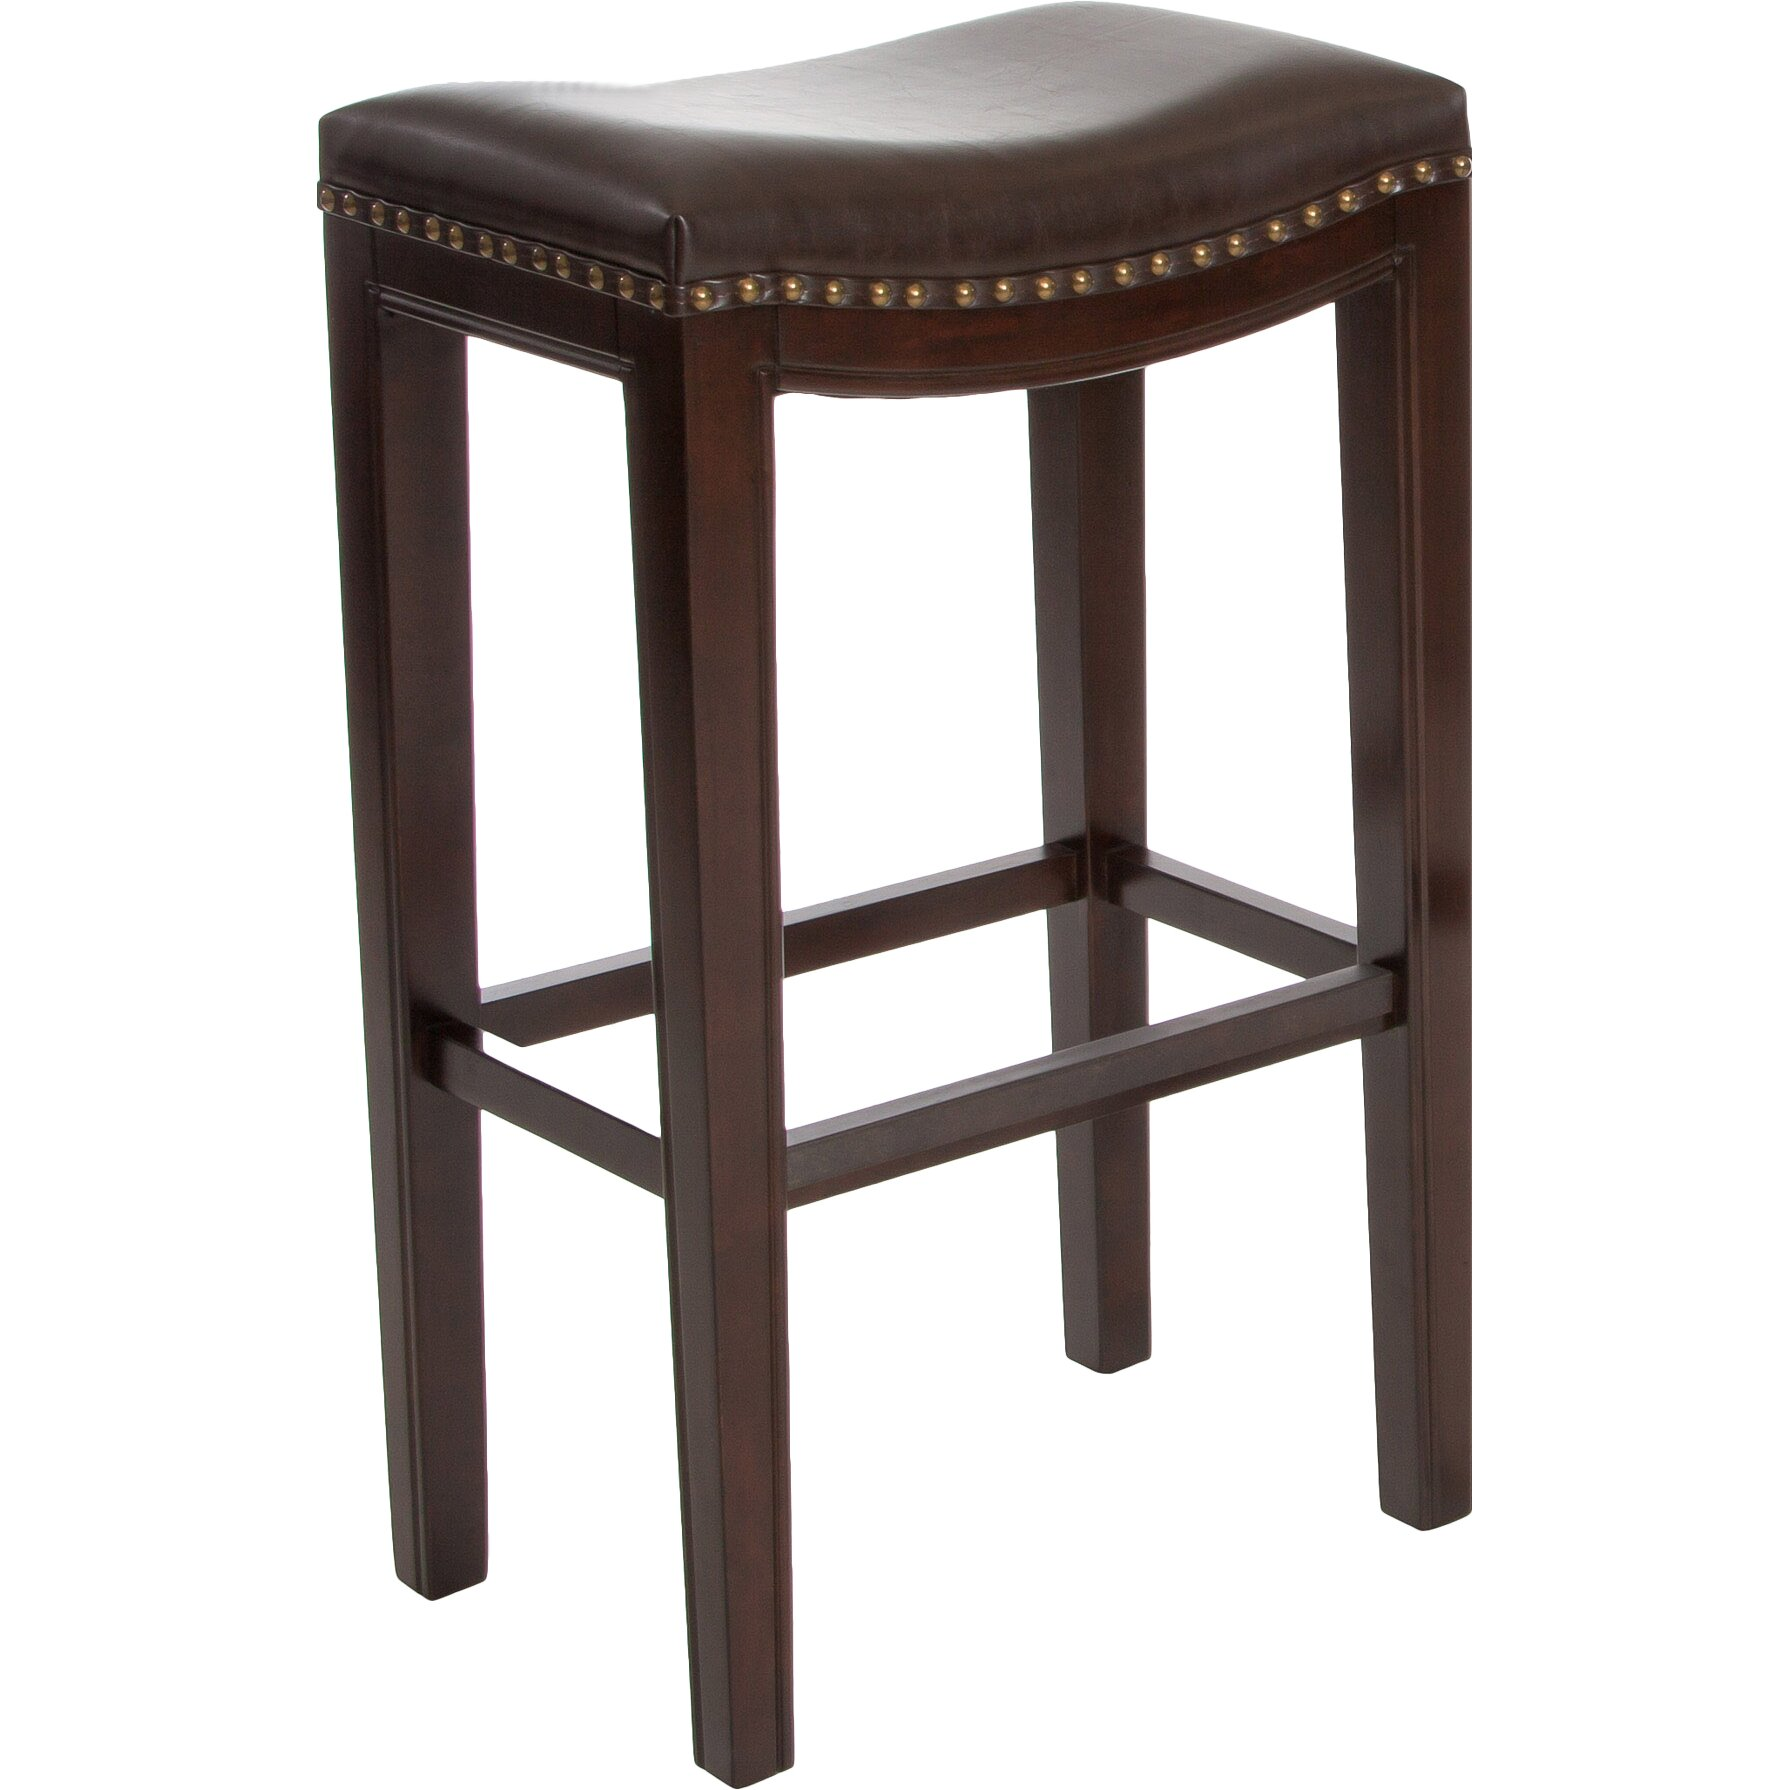 Darby Home Co 30quot Bar Stool amp Reviews Wayfair : Scrogs 30 Bar Stool with Cushion DBHC2882 from www.wayfair.com size 1790 x 1790 jpeg 302kB